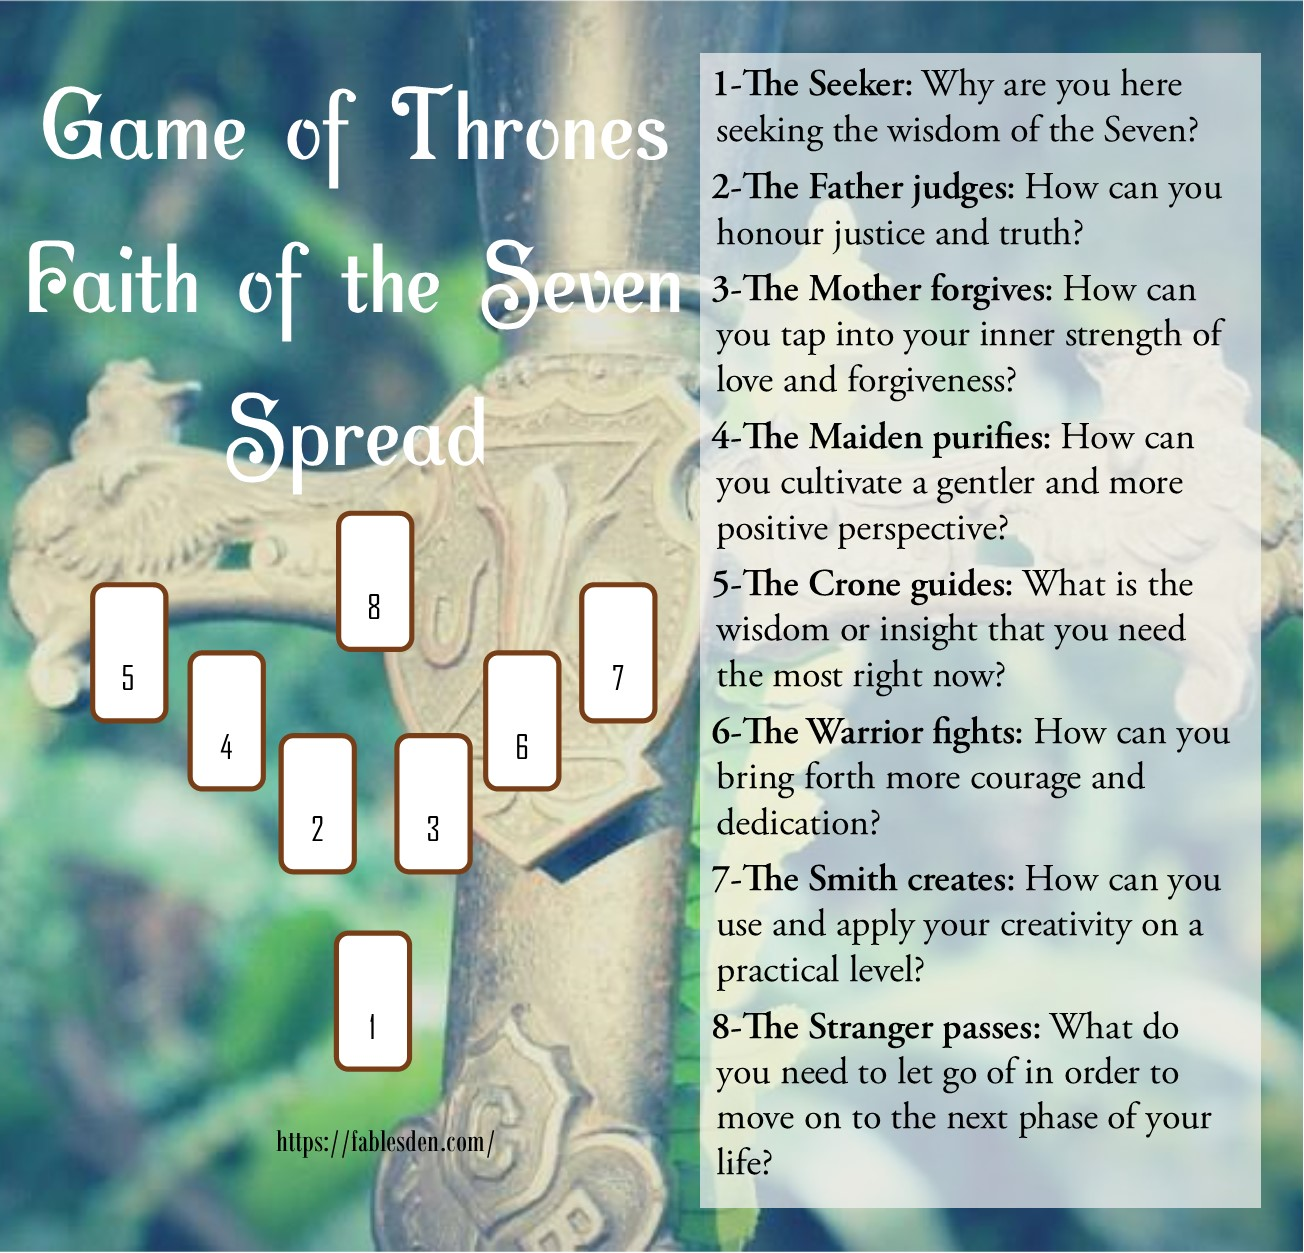 Game of Thrones-Faith of the Seven Spread Vers 2.jpg